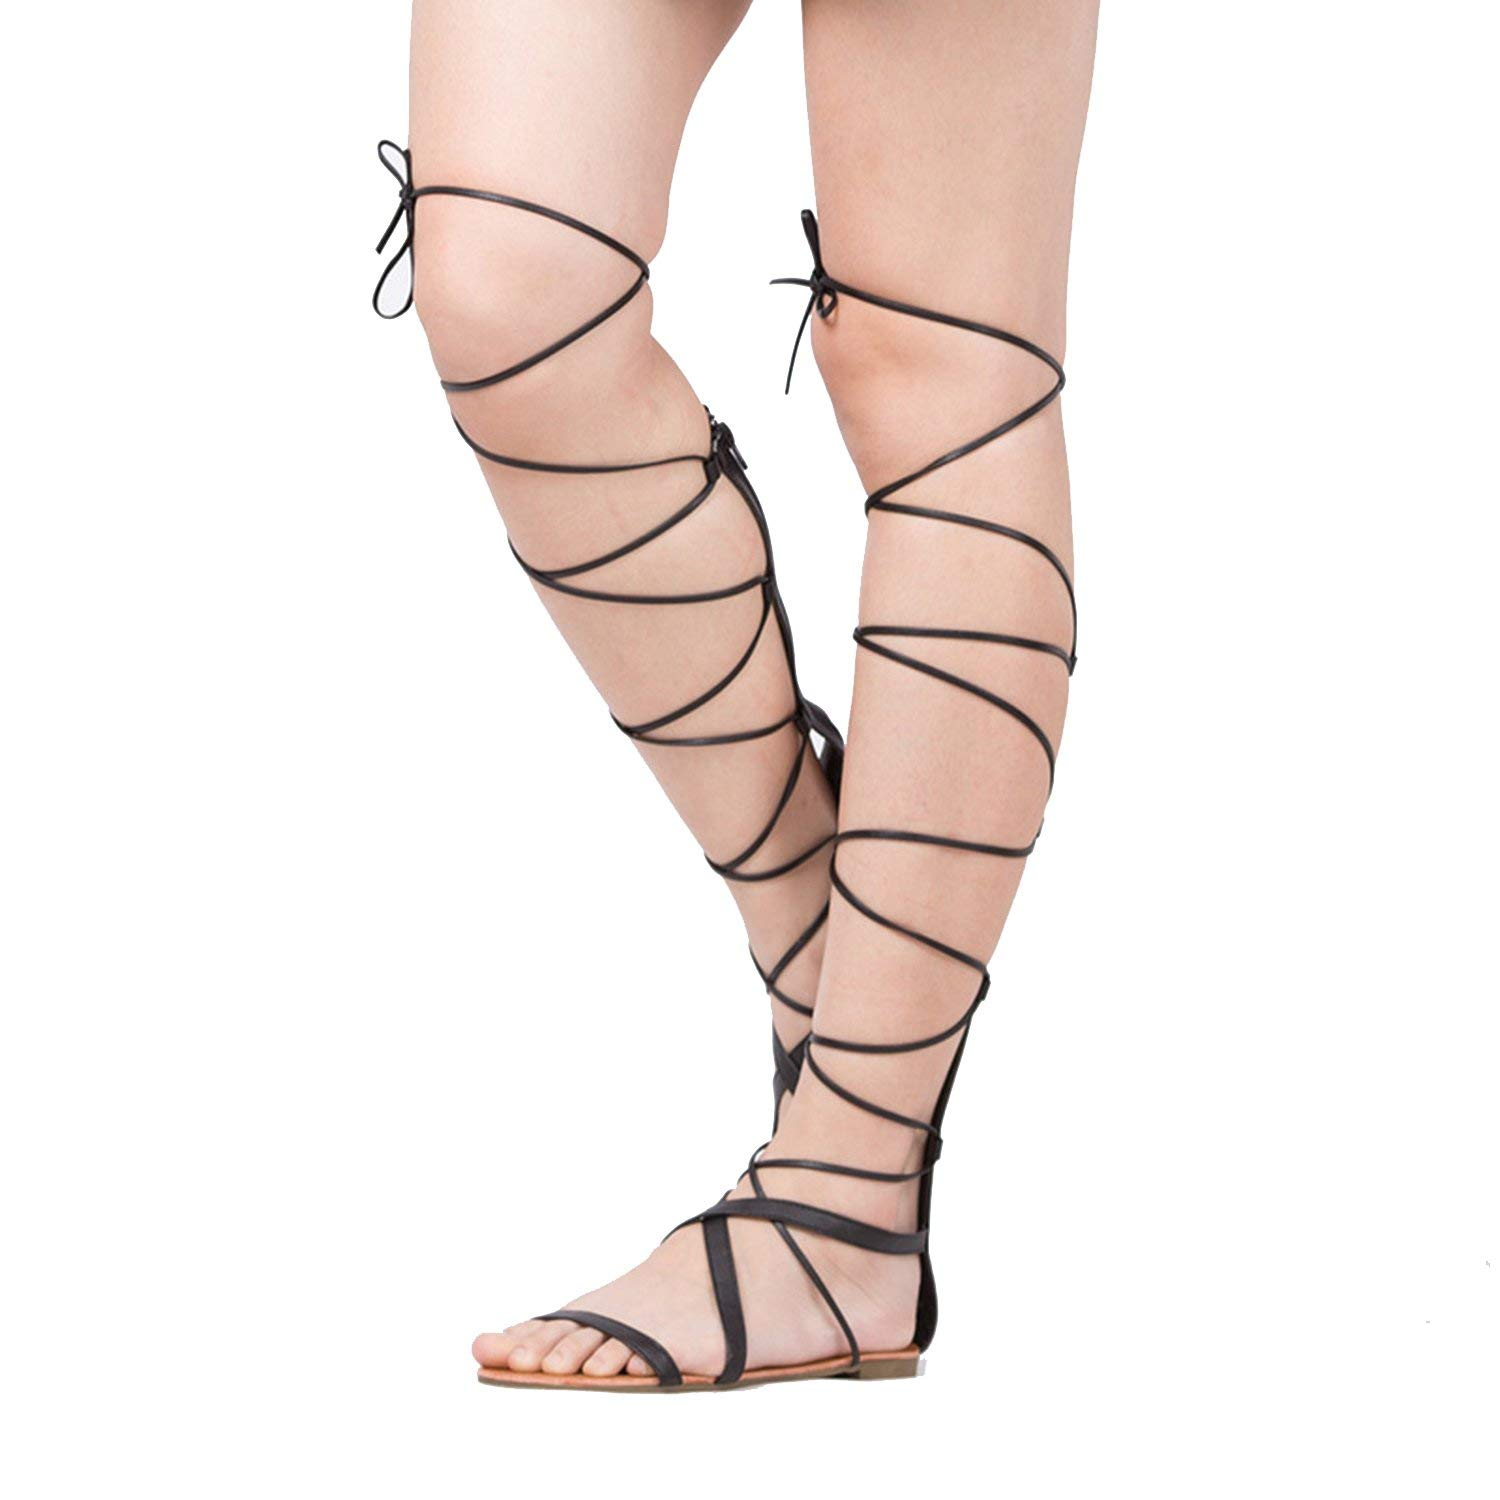 3f6f500b685 Get Quotations · Show-Show-Fashion slides-sandals Shoes Women Sandals  Casual Flat Lace up Boots